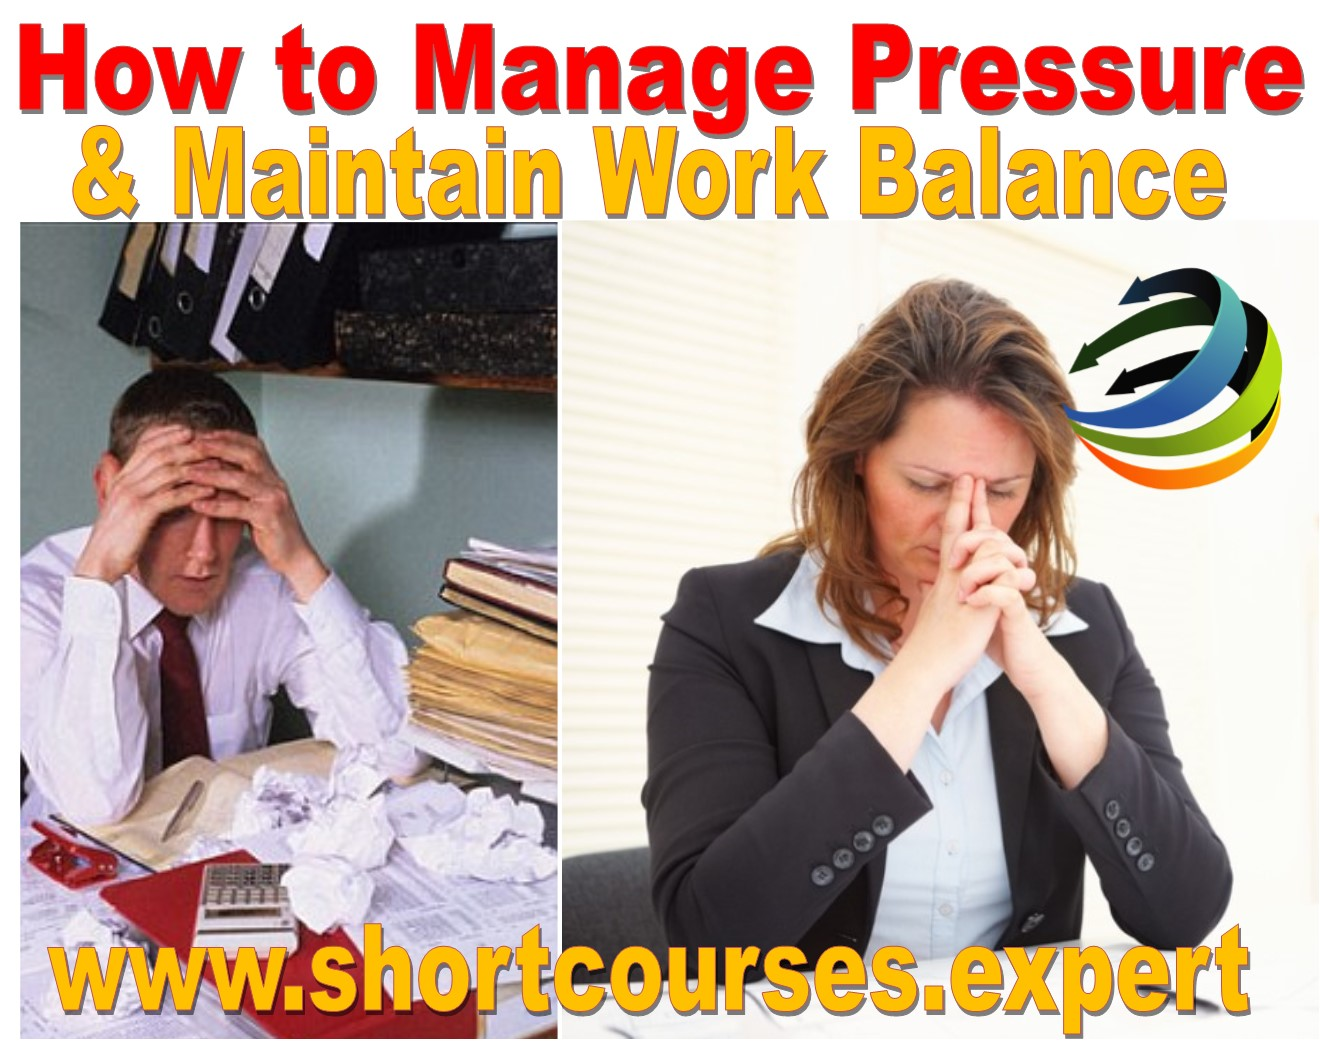 How to manage pressure at work 1 day course